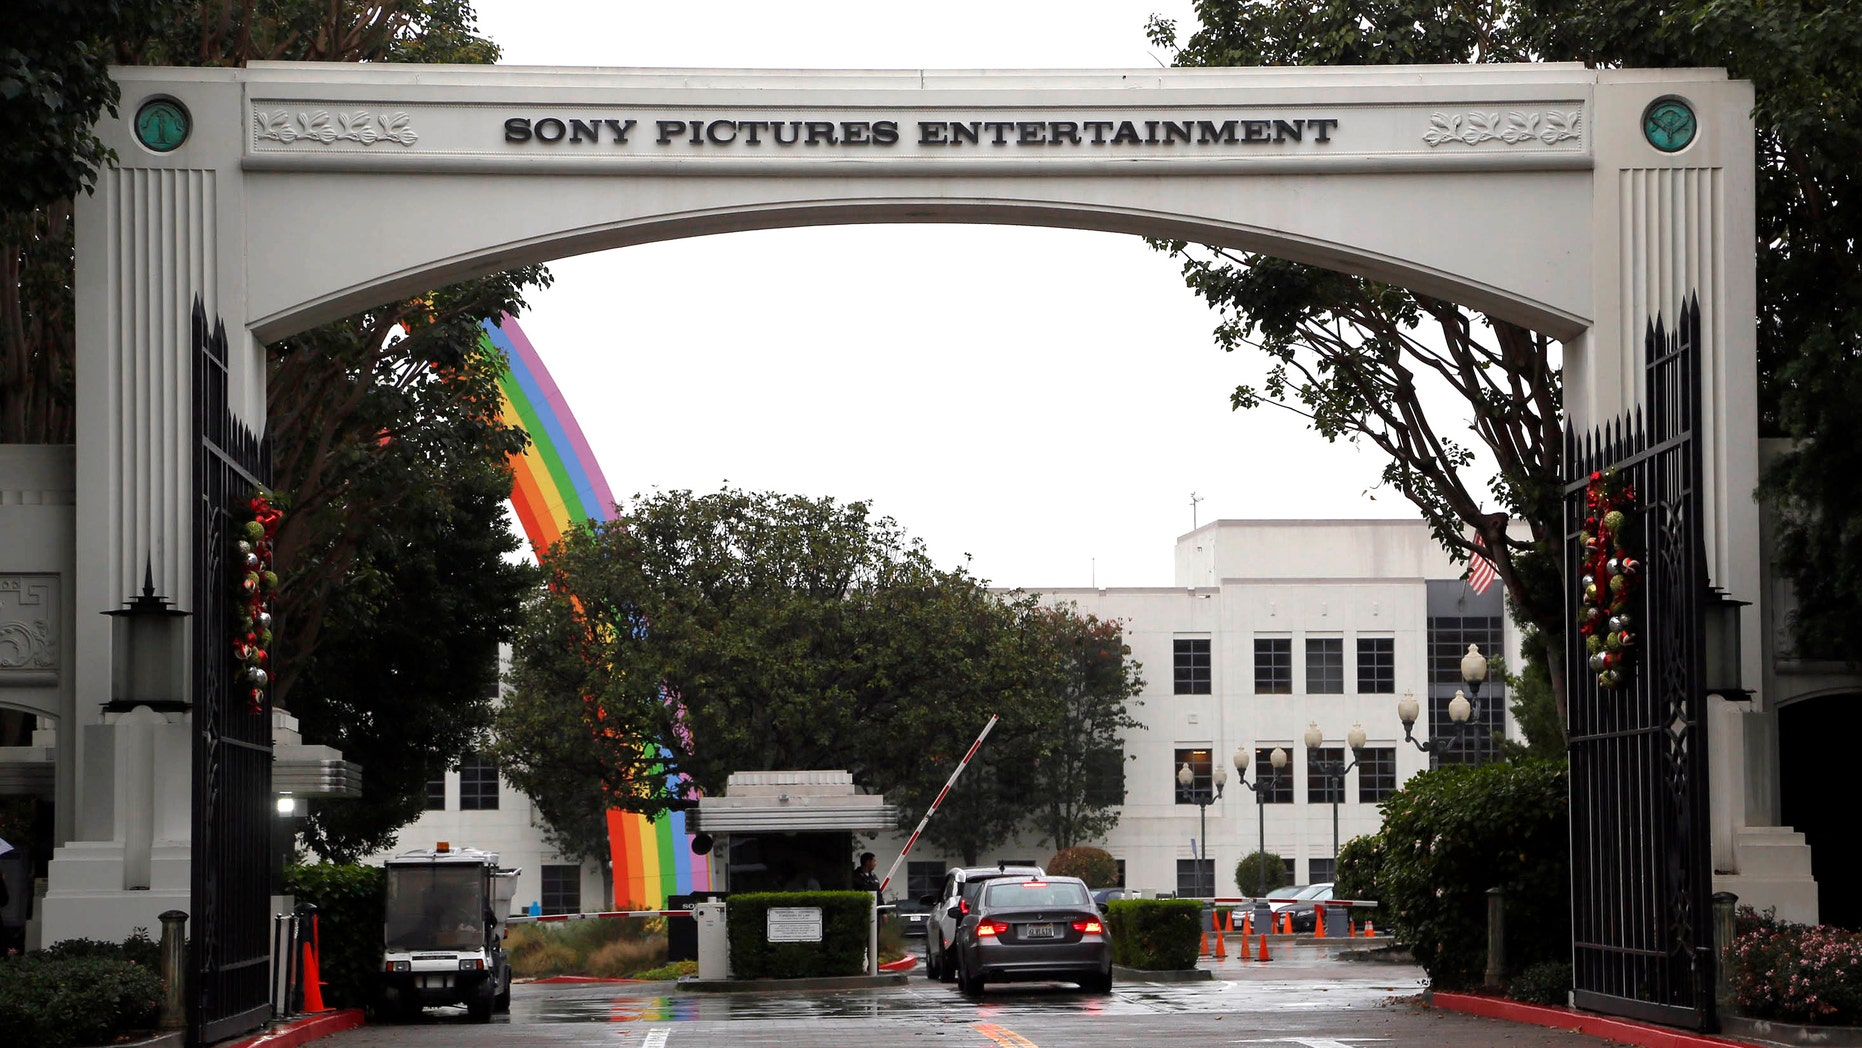 Cars enter Sony Pictures Entertainment headquarters in Culver City, Calif. on Dec. 2, 2014.